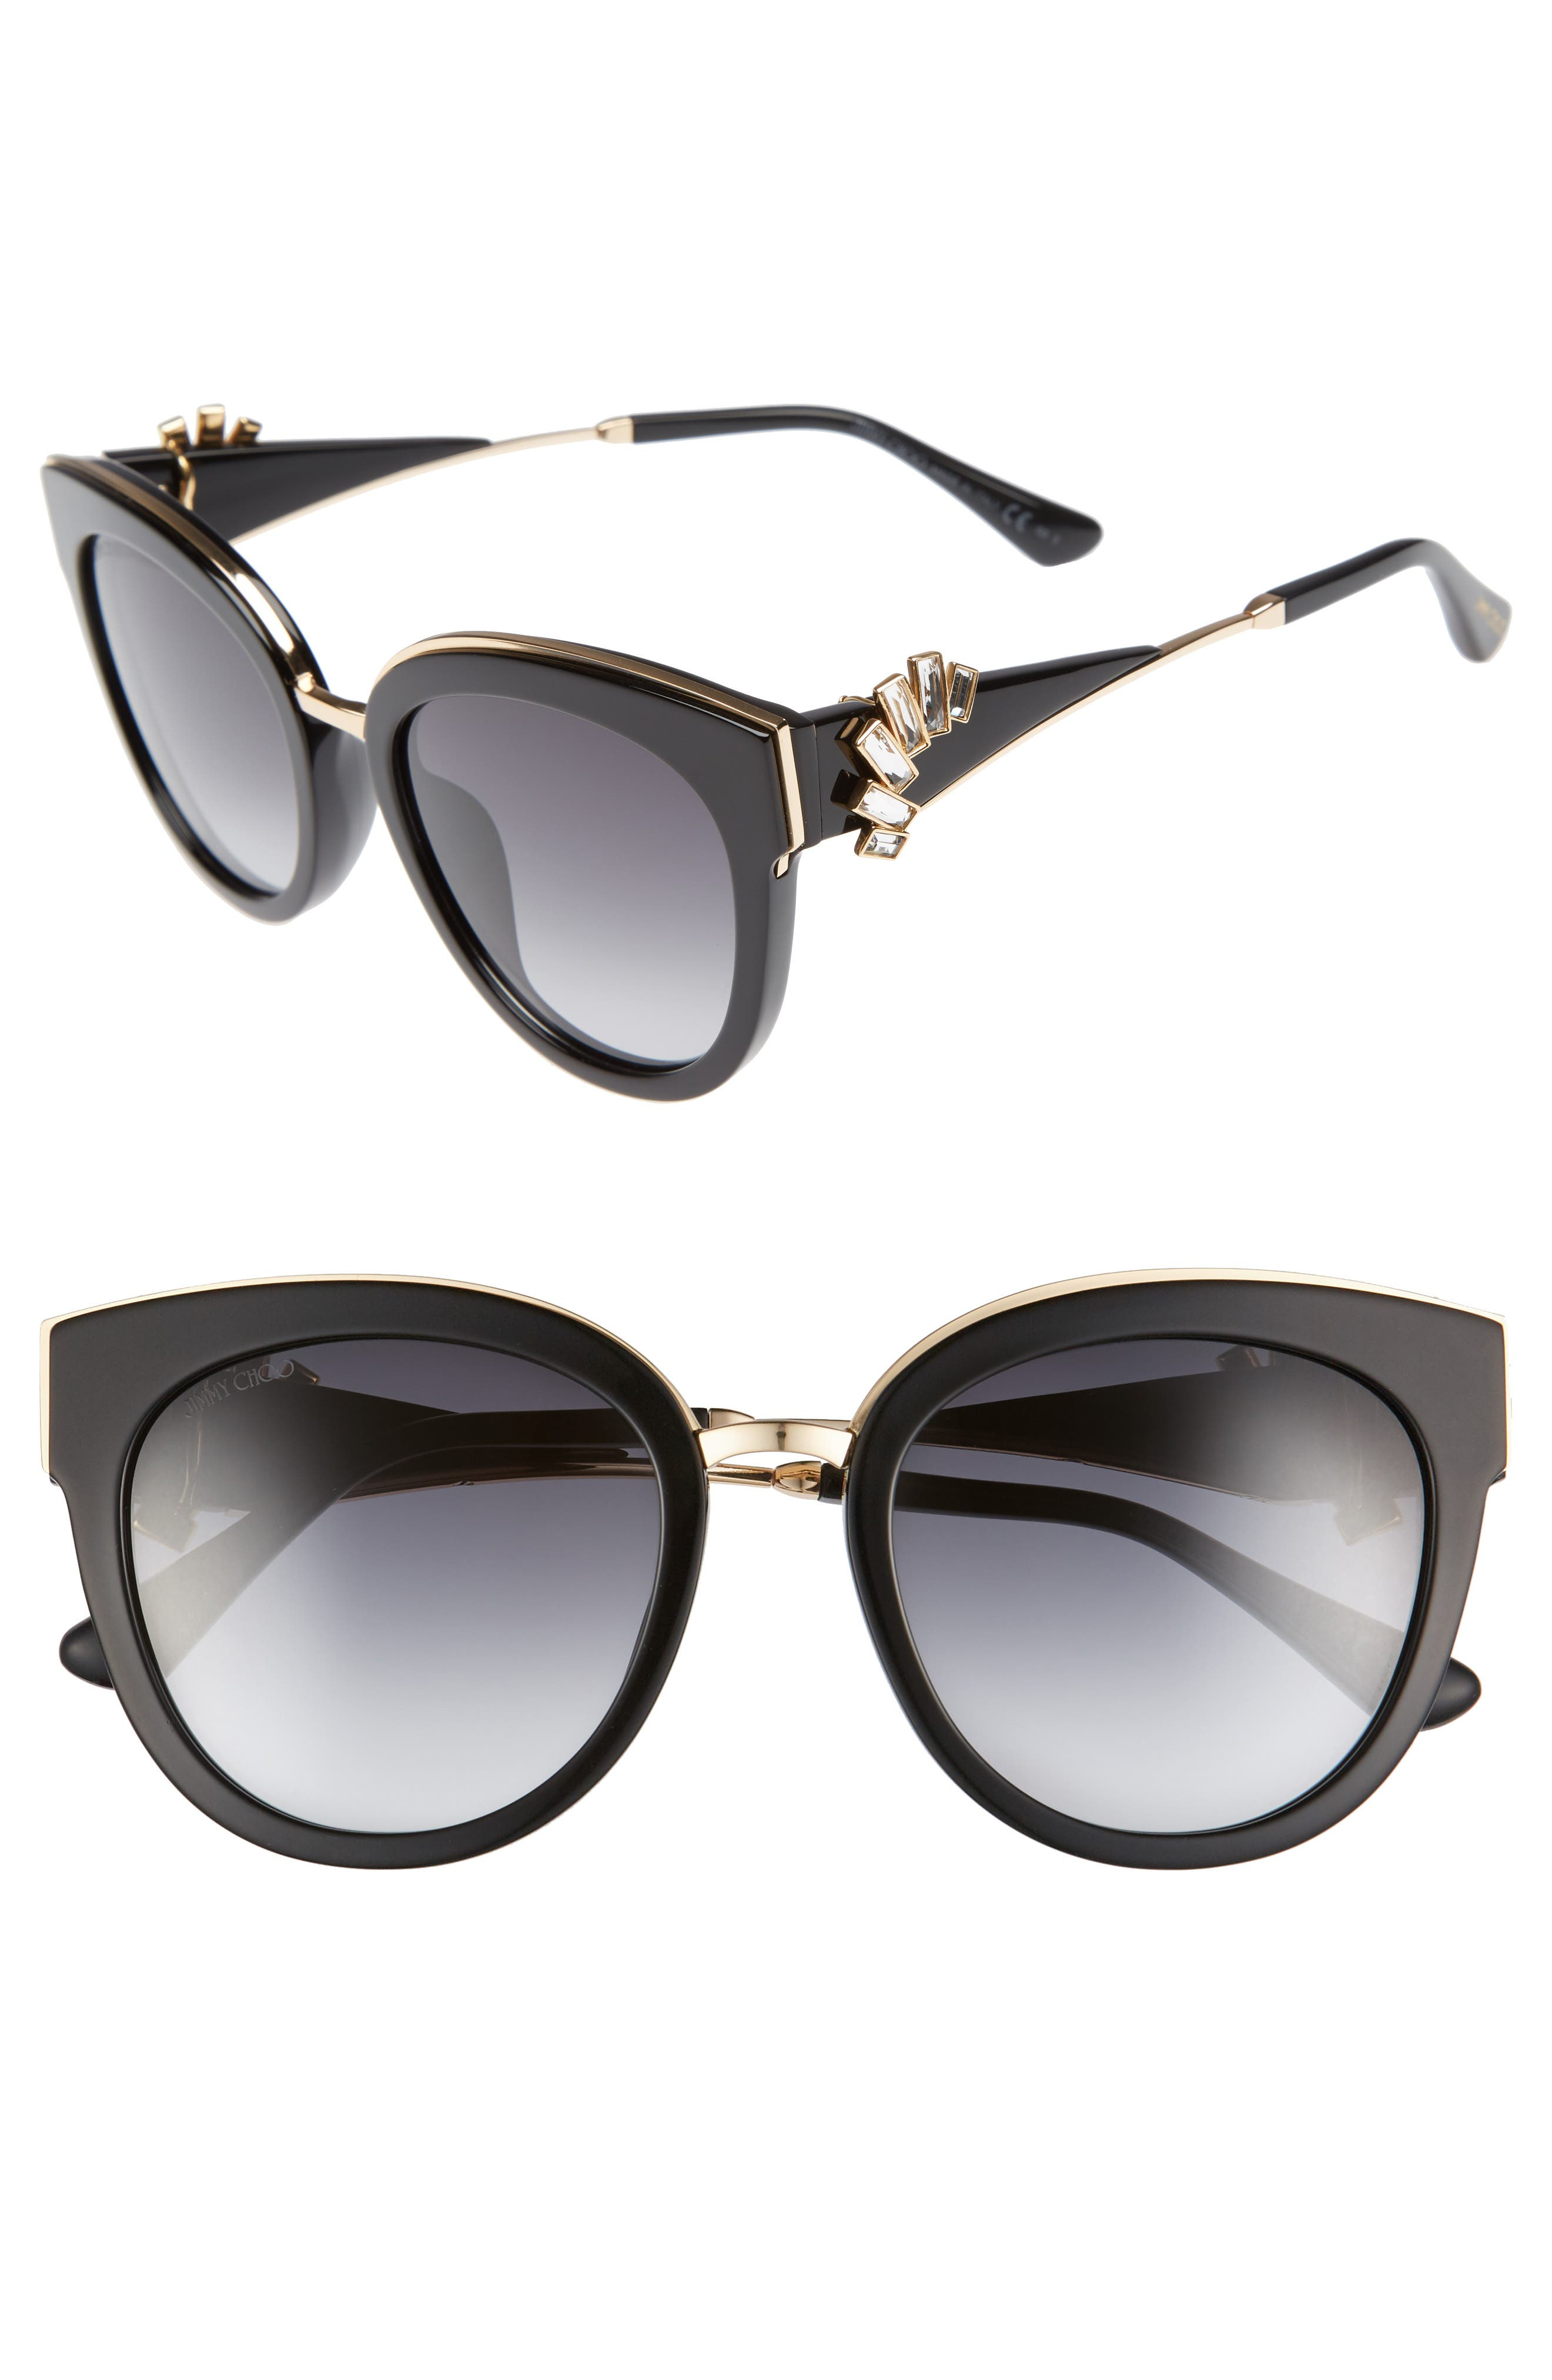 JIMMY CHOO Jades 53mm Gradient Cat Eye Sunglasses